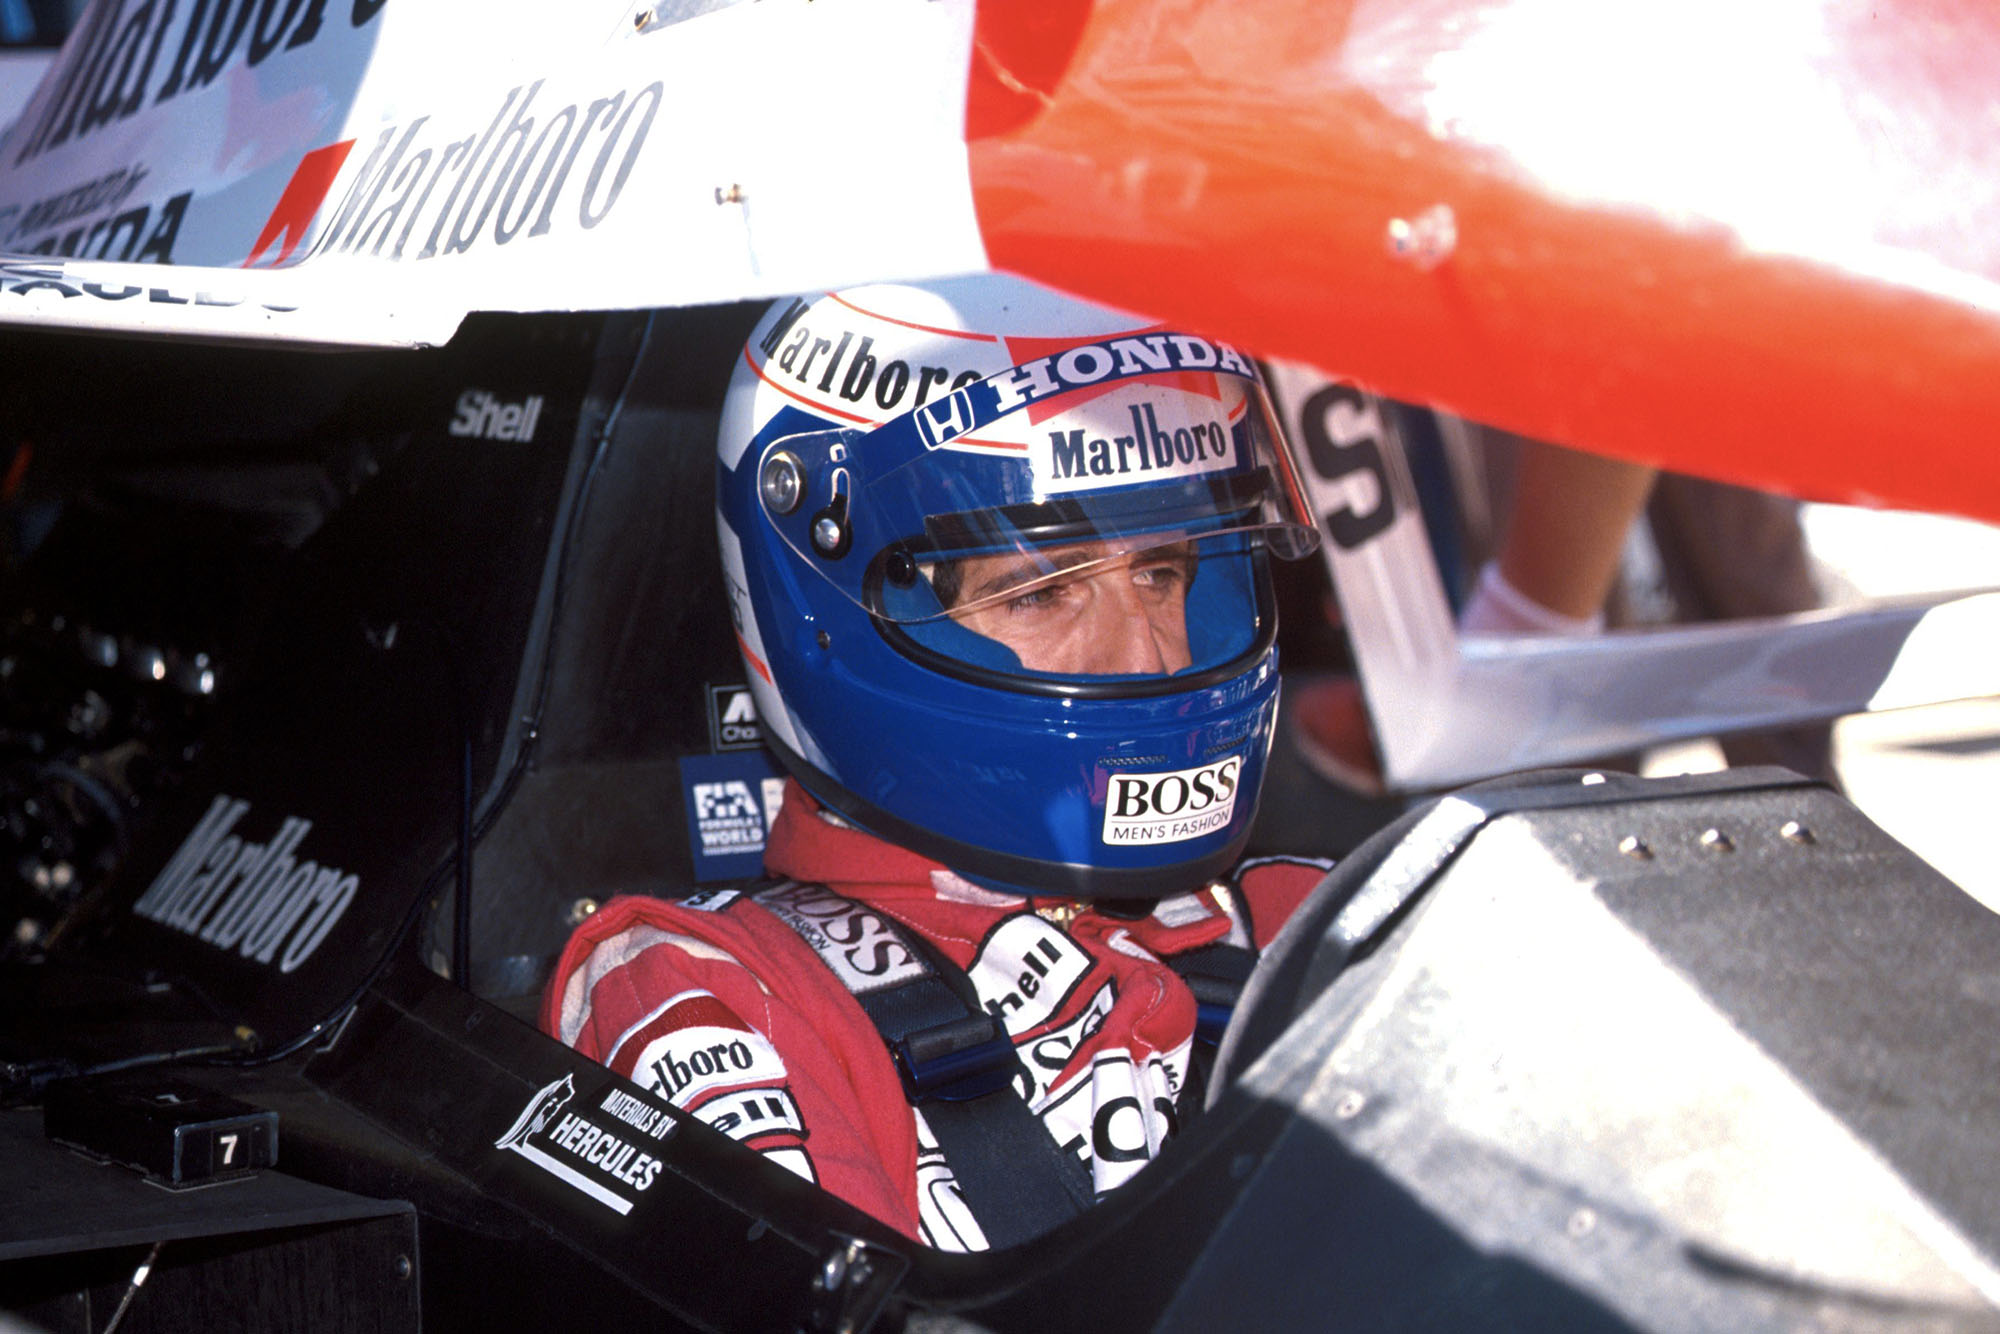 1989 AUS GP Prost pole